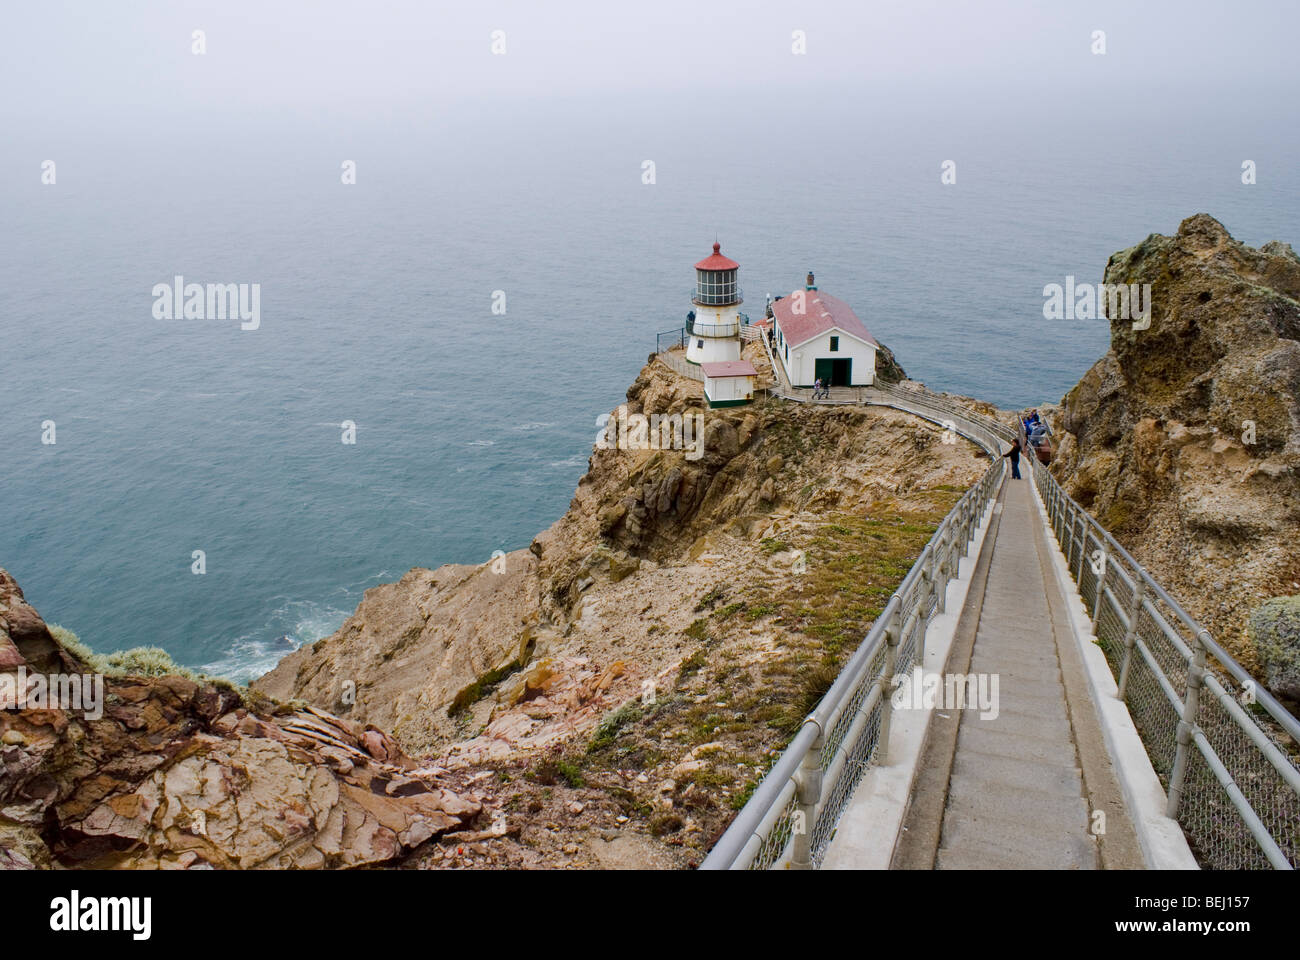 The lighthouse at Point Reyes National Seashore in California. - Stock Image